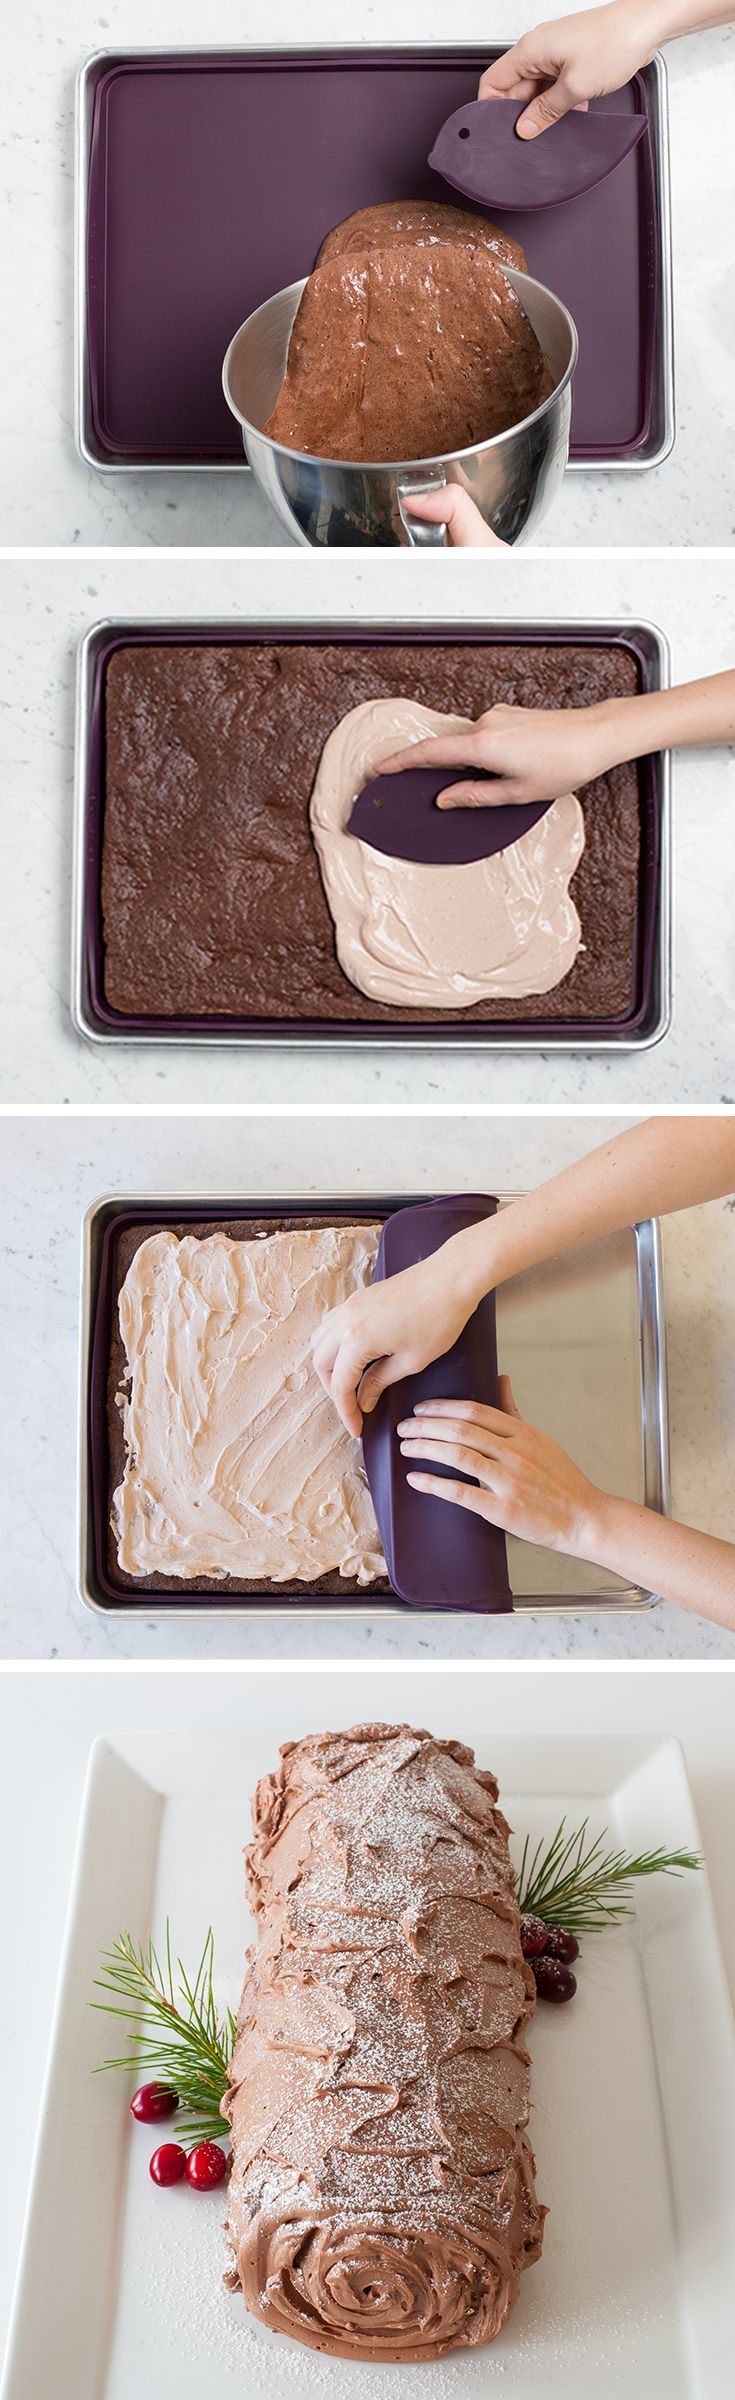 Bake & Roll: A multi-purpose, flexible, non-stick baking mat for rolled cakes, roulades, and cookies.